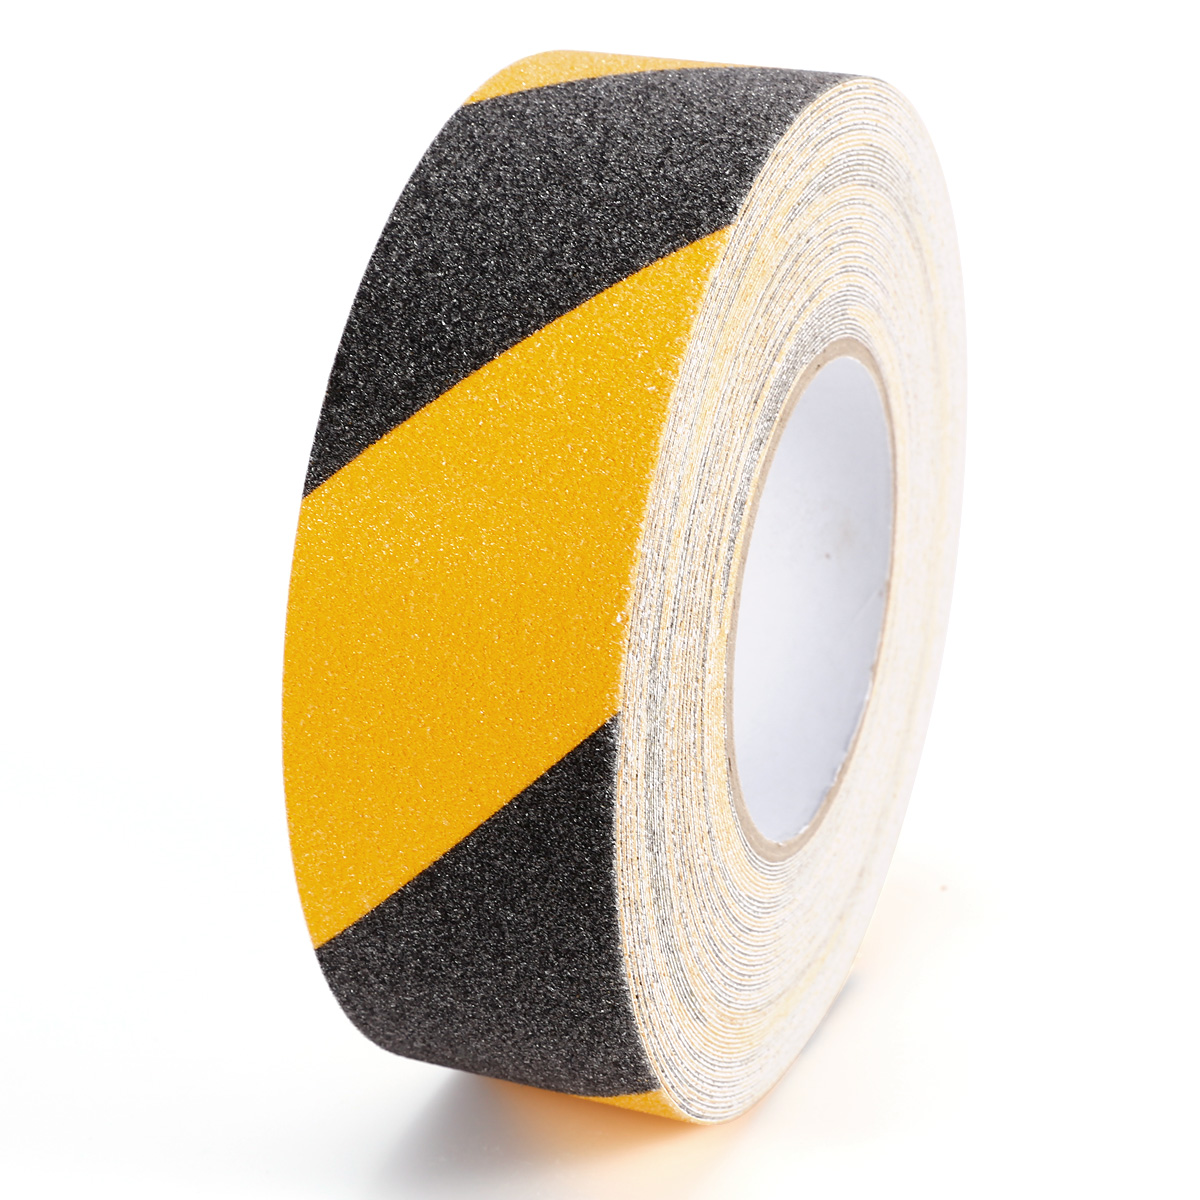 Anti Slip Step Safety Non Skid Grip Tape Roll Sticker